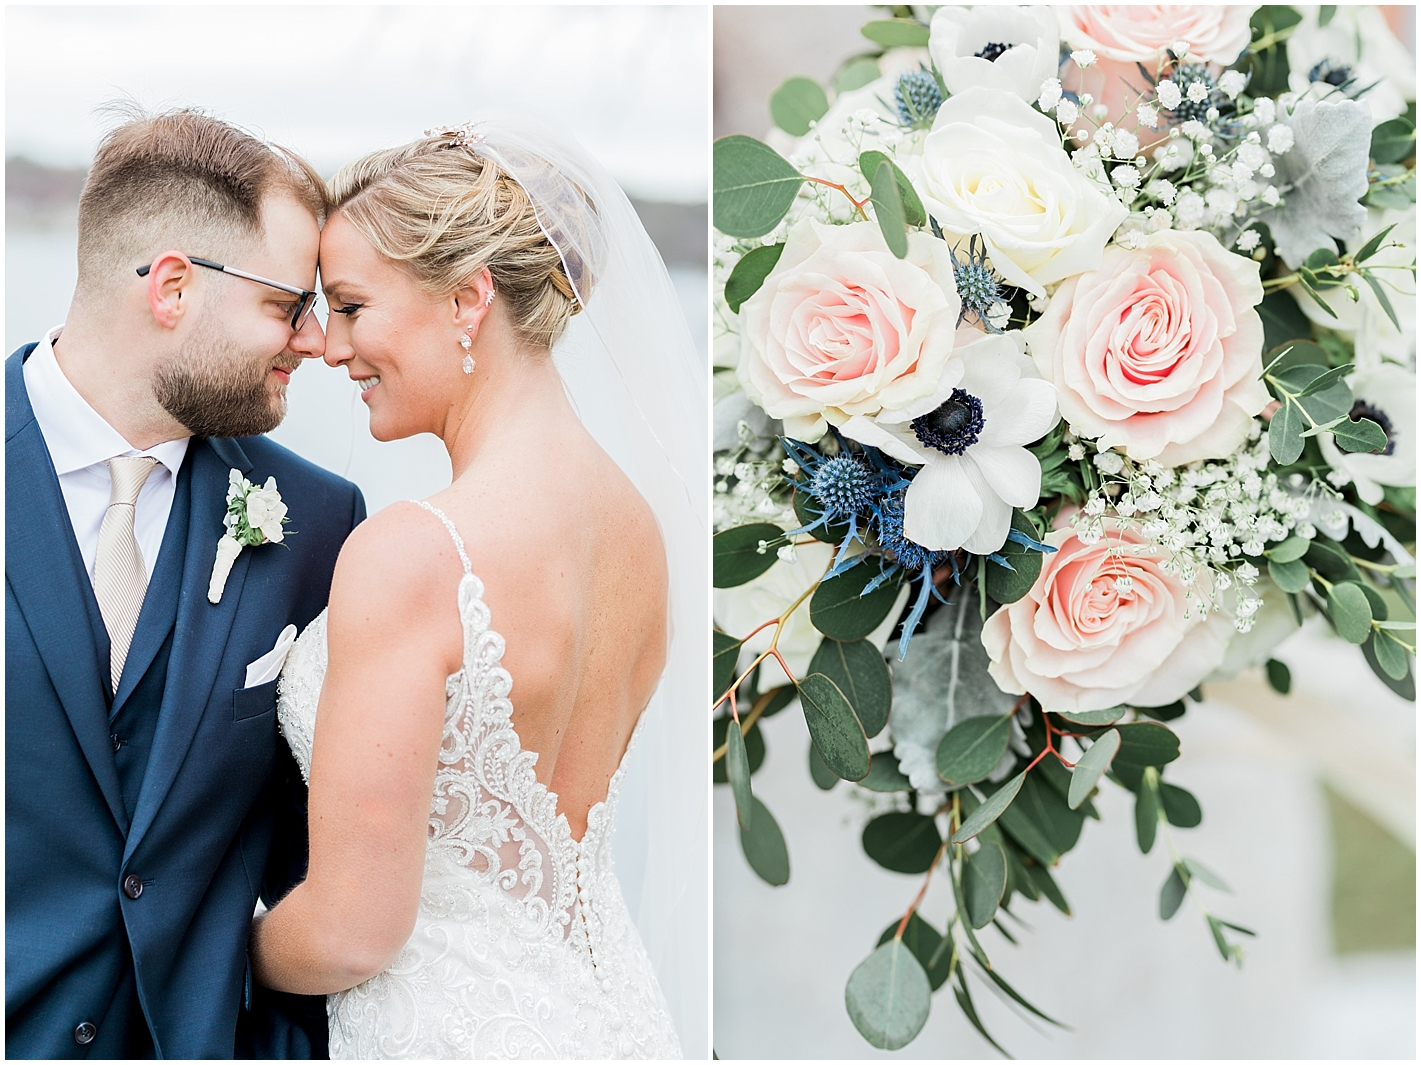 Detailed Back Lace and beaded Wedding Gown Photos by Alyssa Parker Photography